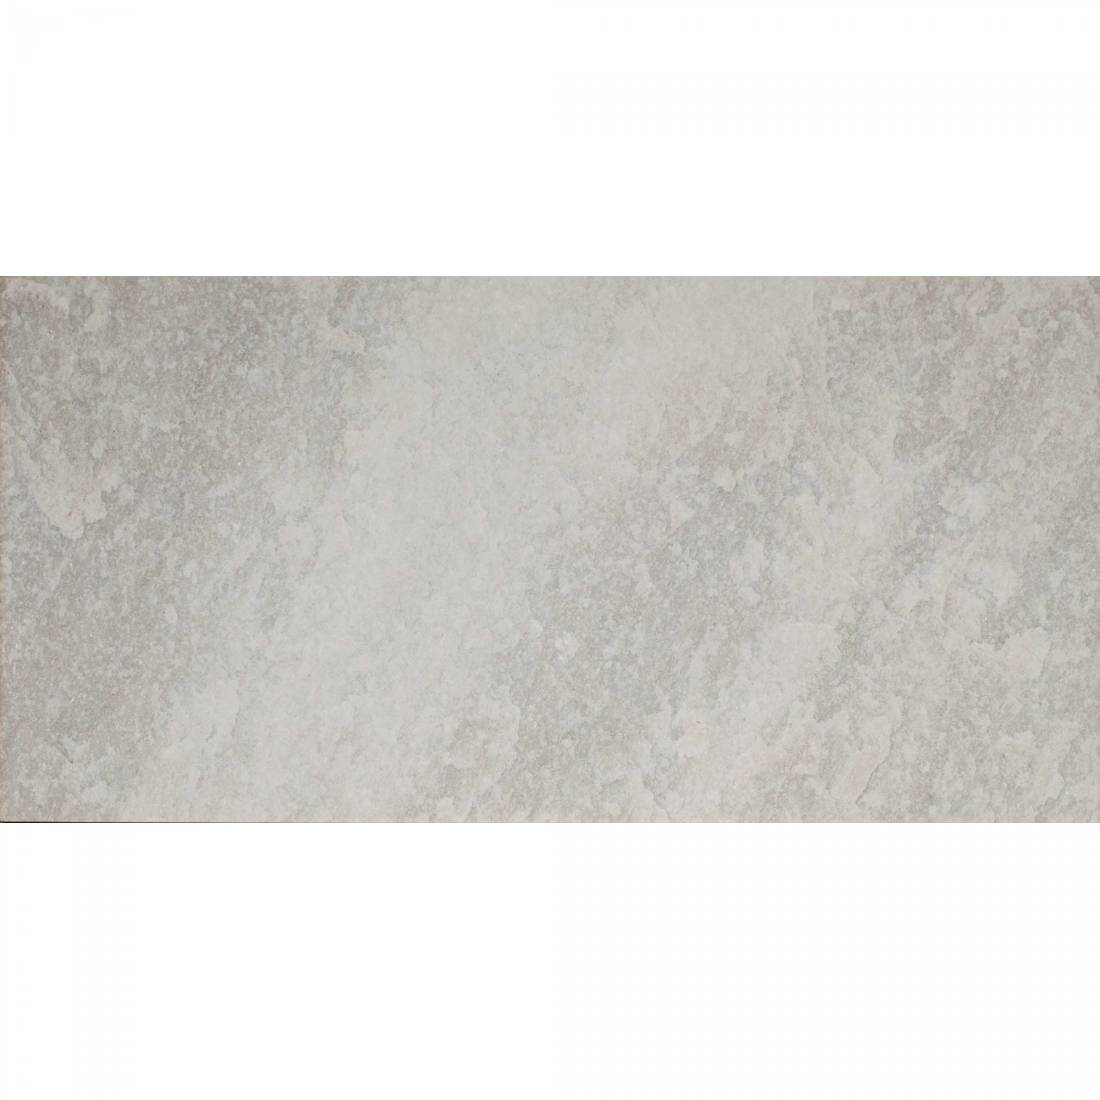 Fossil 30x60 Gris 1